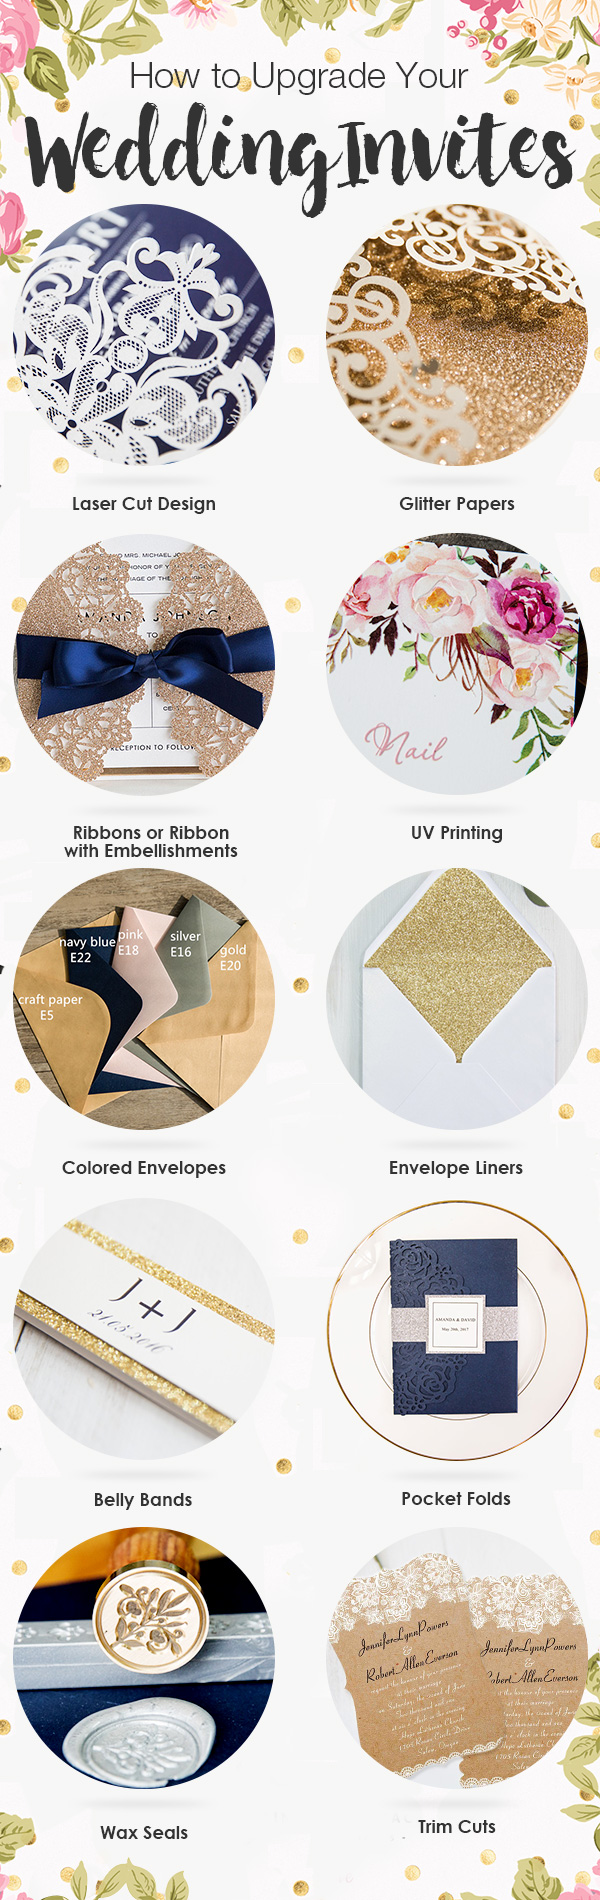 Creative Ways to Upgrade Your Wedding Invites